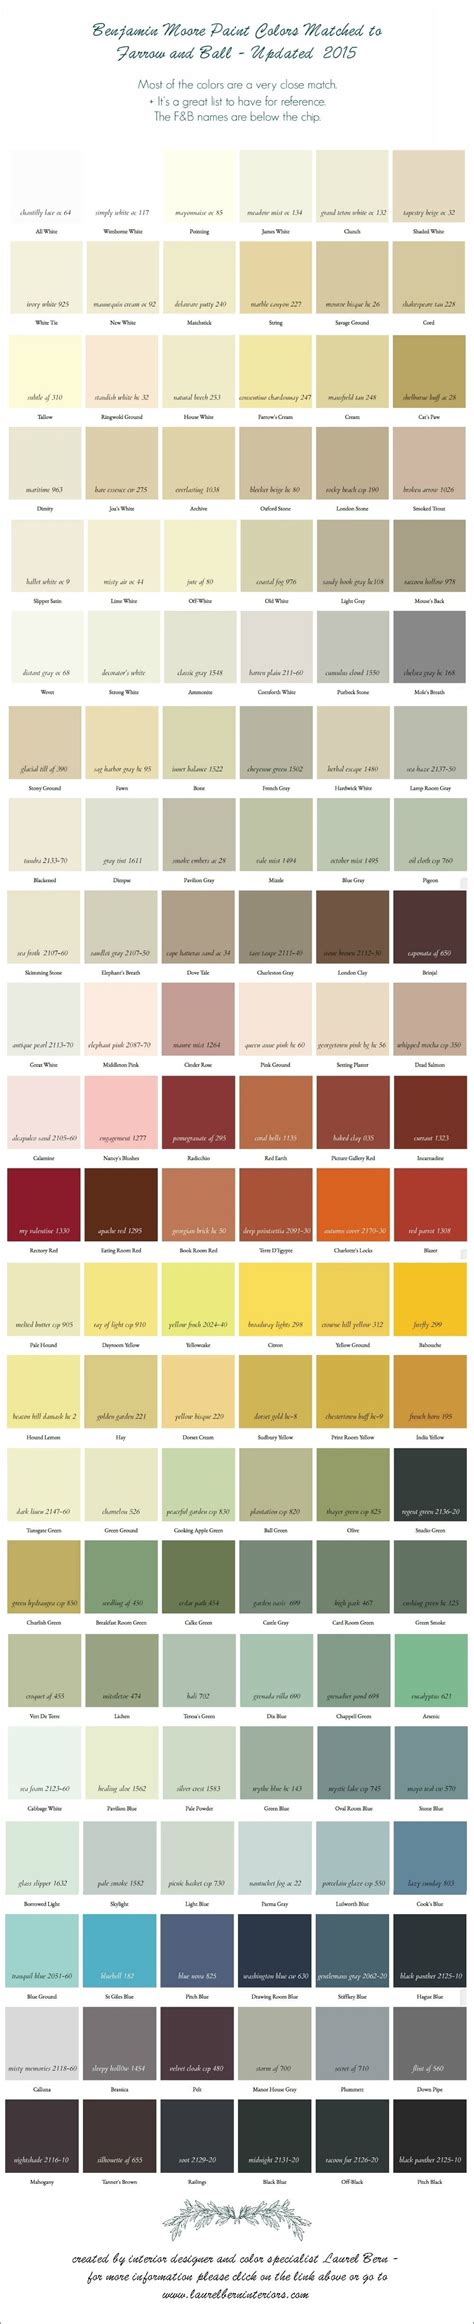 benjamin moore paint colors matched to farrow and ball